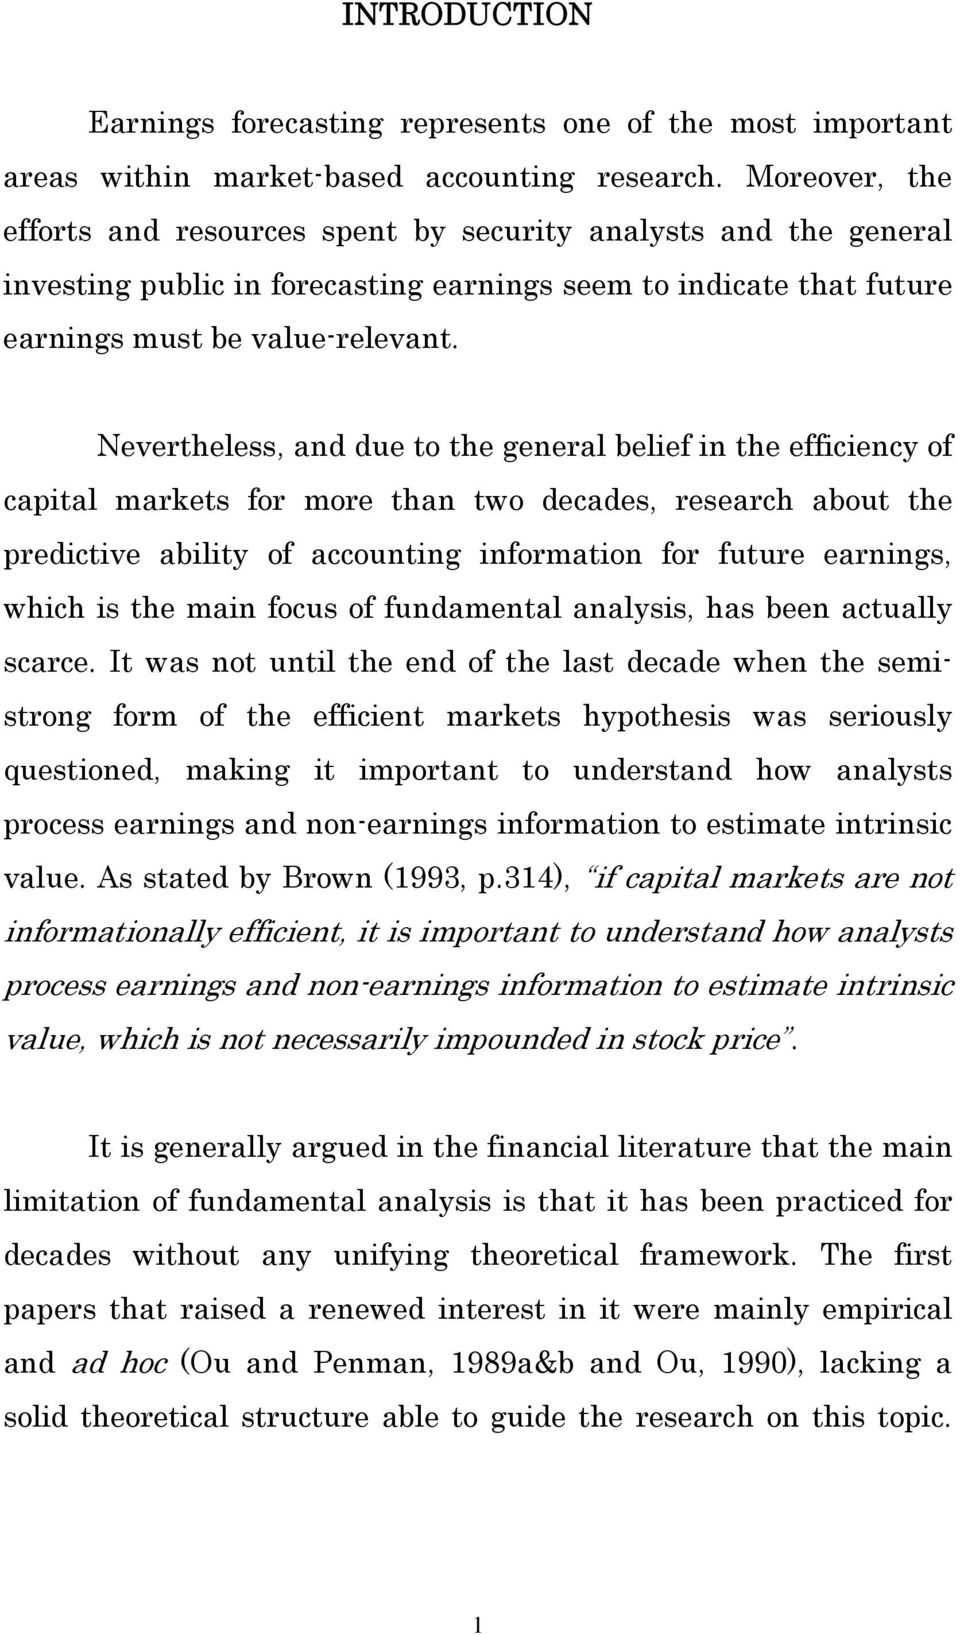 Nevertheless, and due to the general belief in the efficiency of capital markets for more than two decades, research about the predictive ability of accounting information for future earnings, which